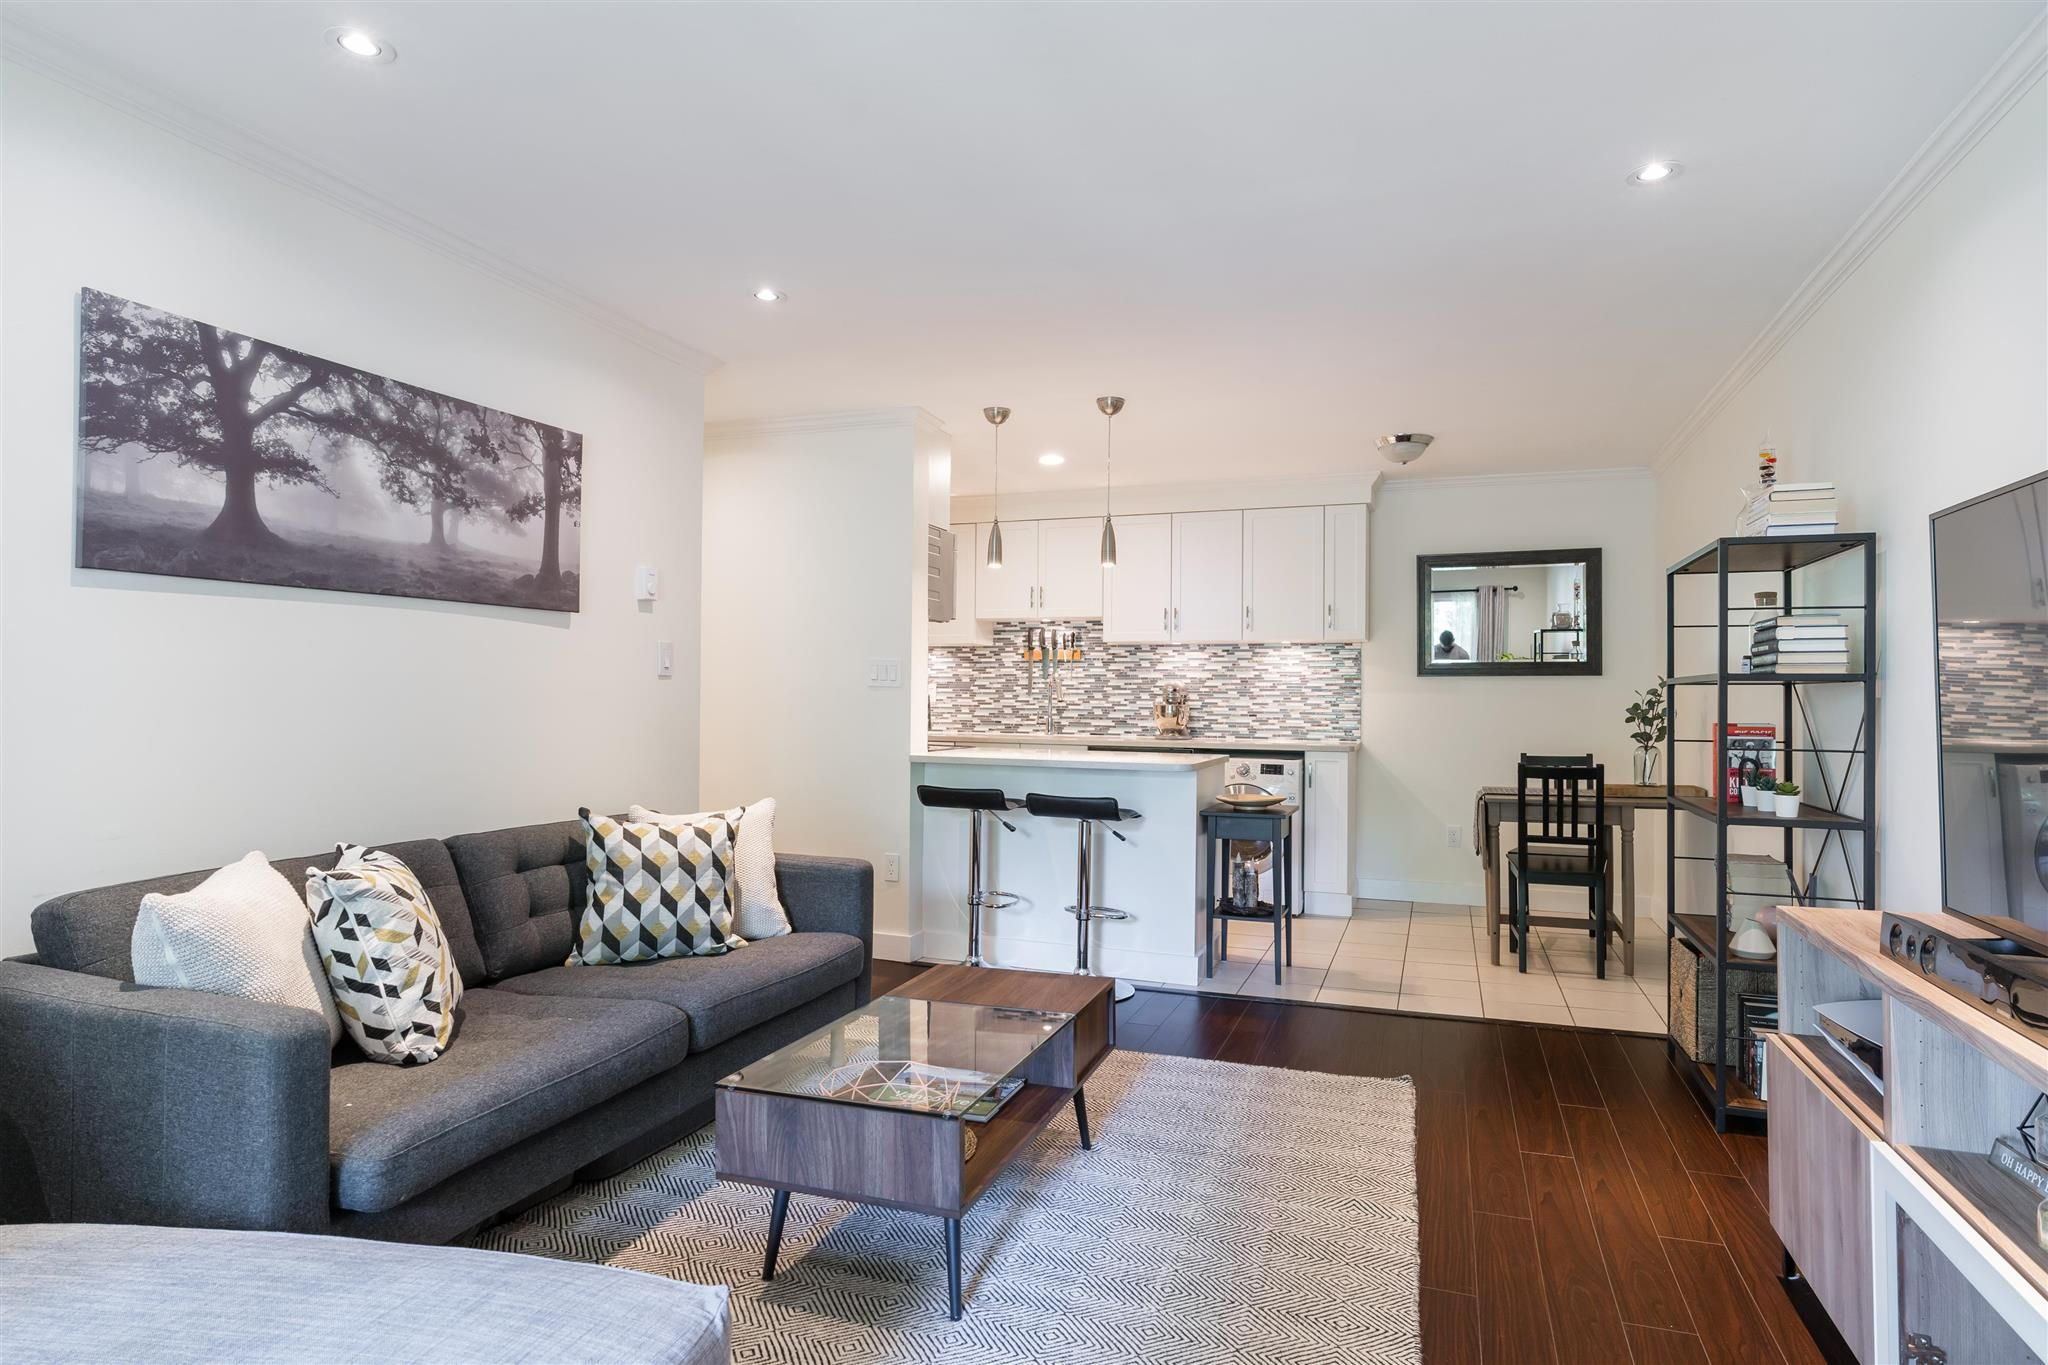 """Main Photo: 213 808 E 8TH Avenue in Vancouver: Mount Pleasant VE Condo for sale in """"PRINCE ALBERT COURT"""" (Vancouver East)  : MLS®# R2595130"""